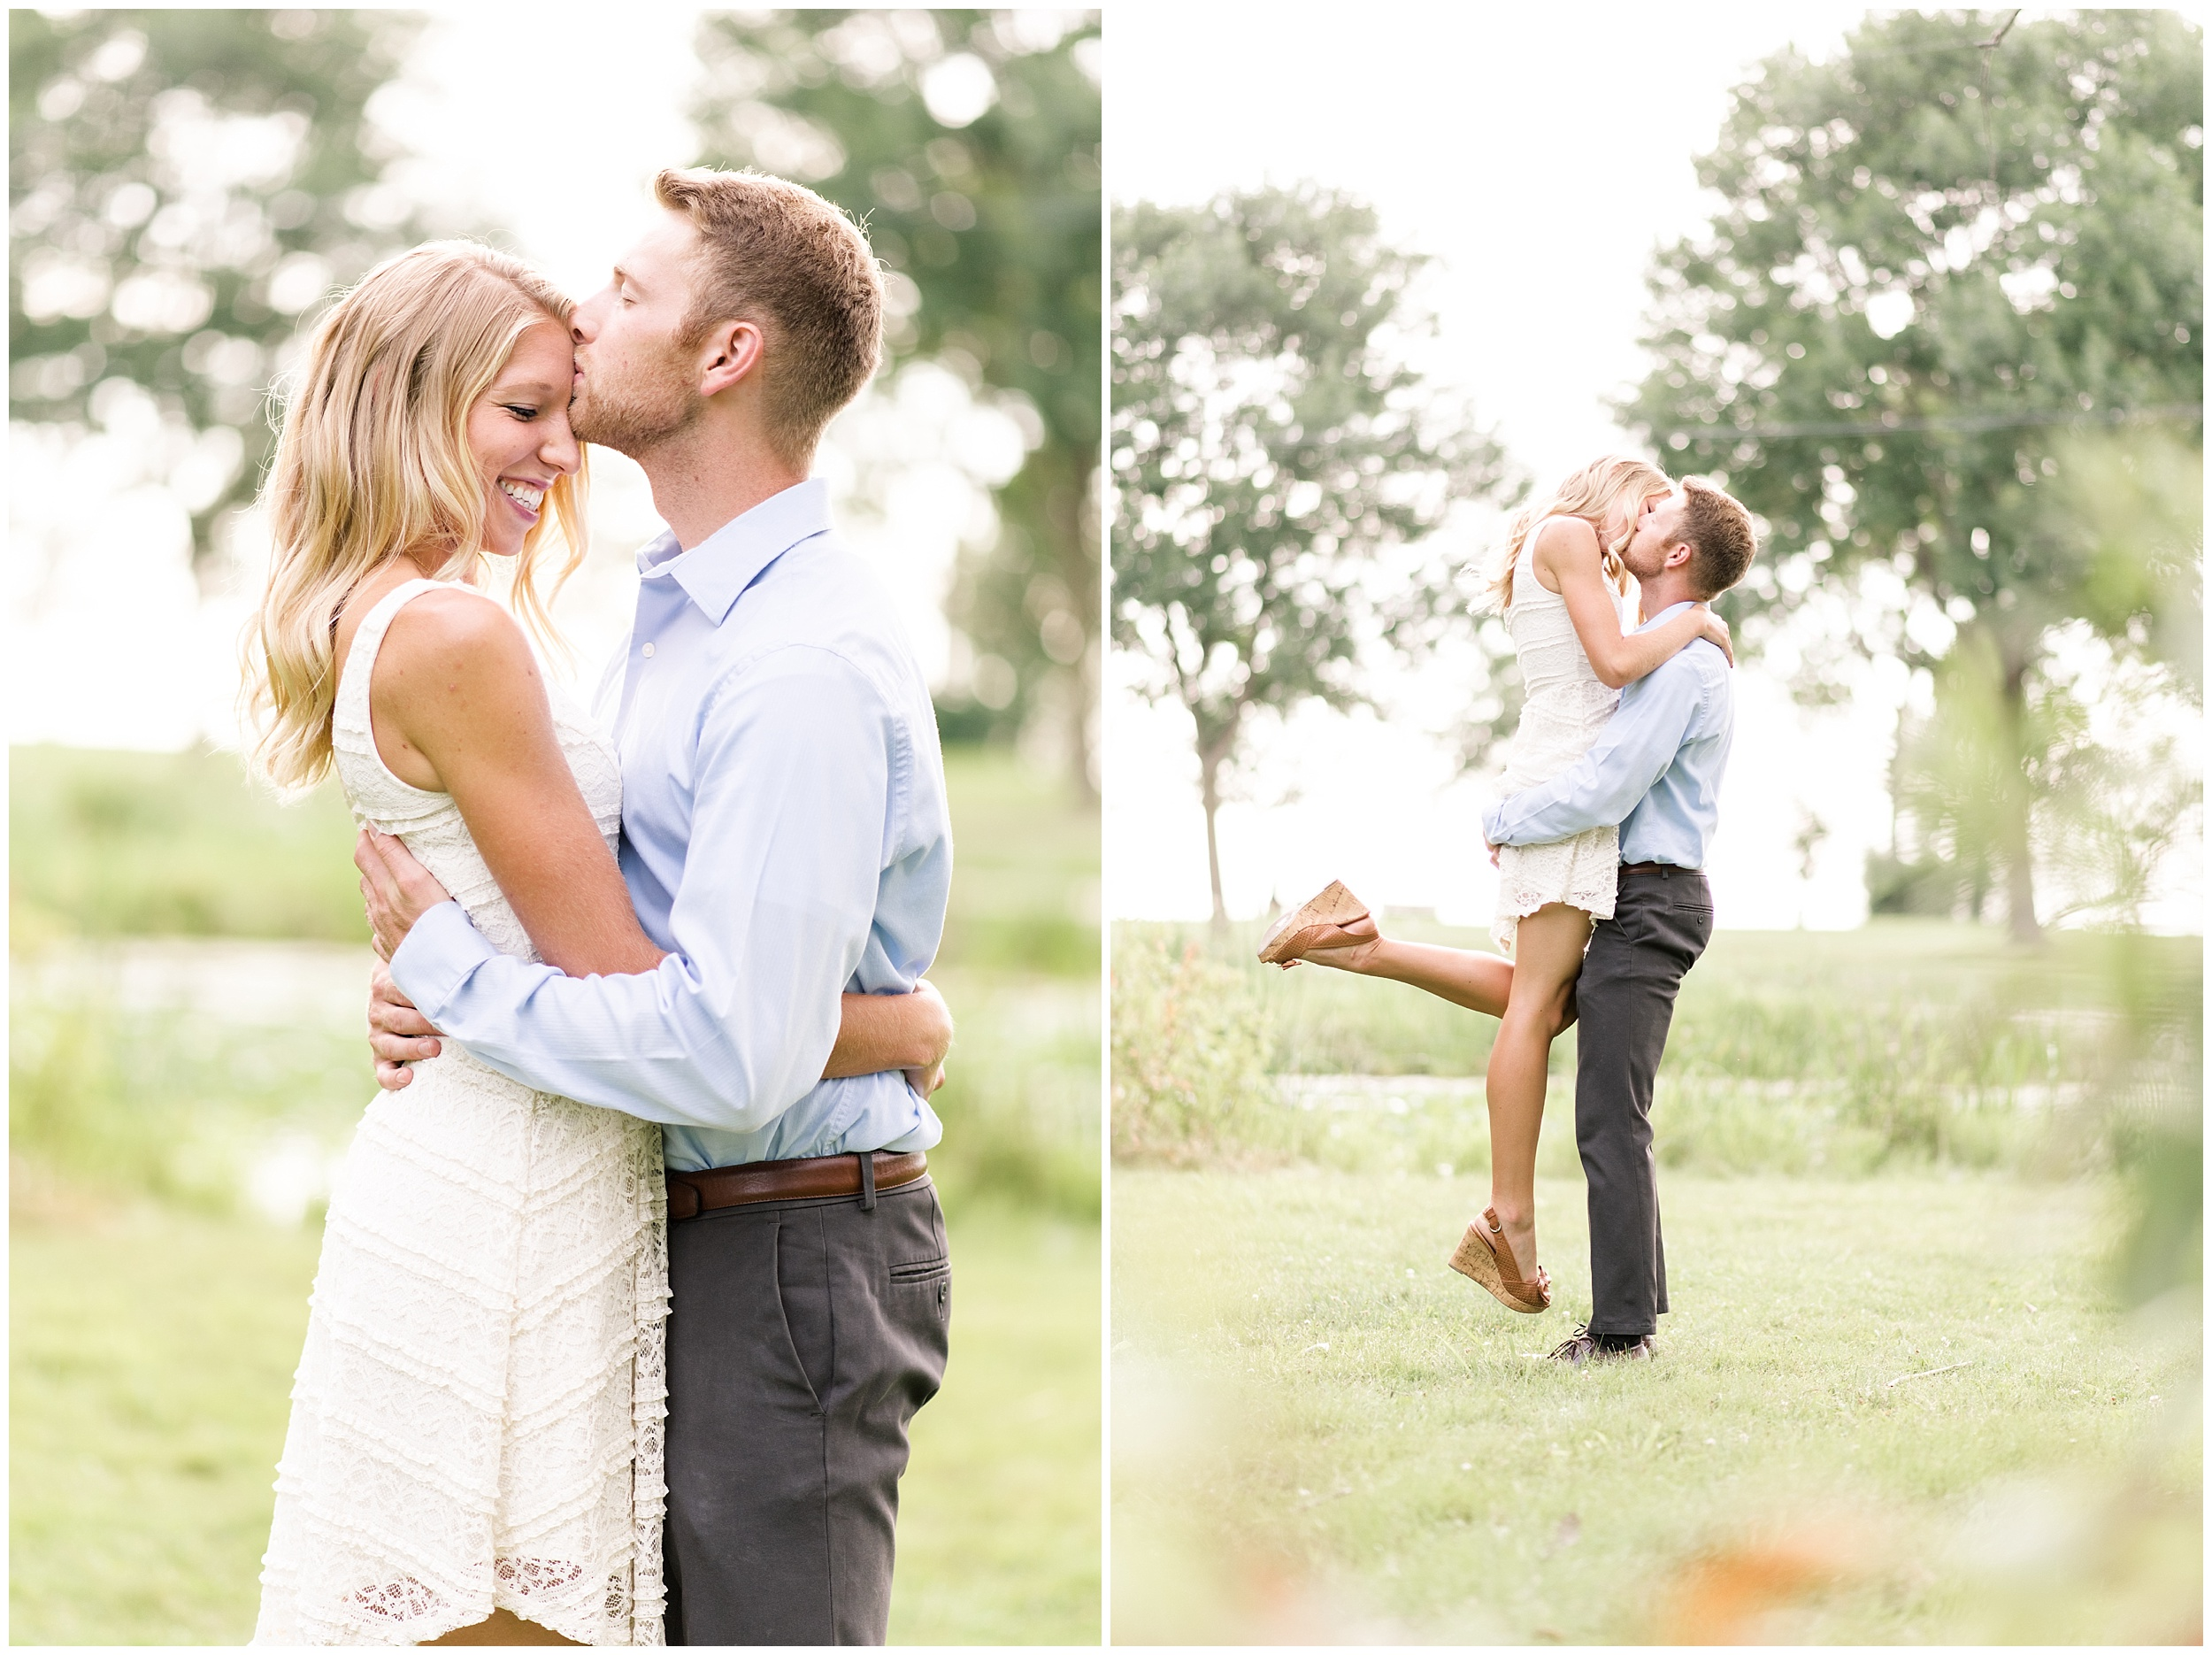 tenney-park-engagement-session-madison-wisconsin-bright-light-airy-wedding-photographer_0016.jpg